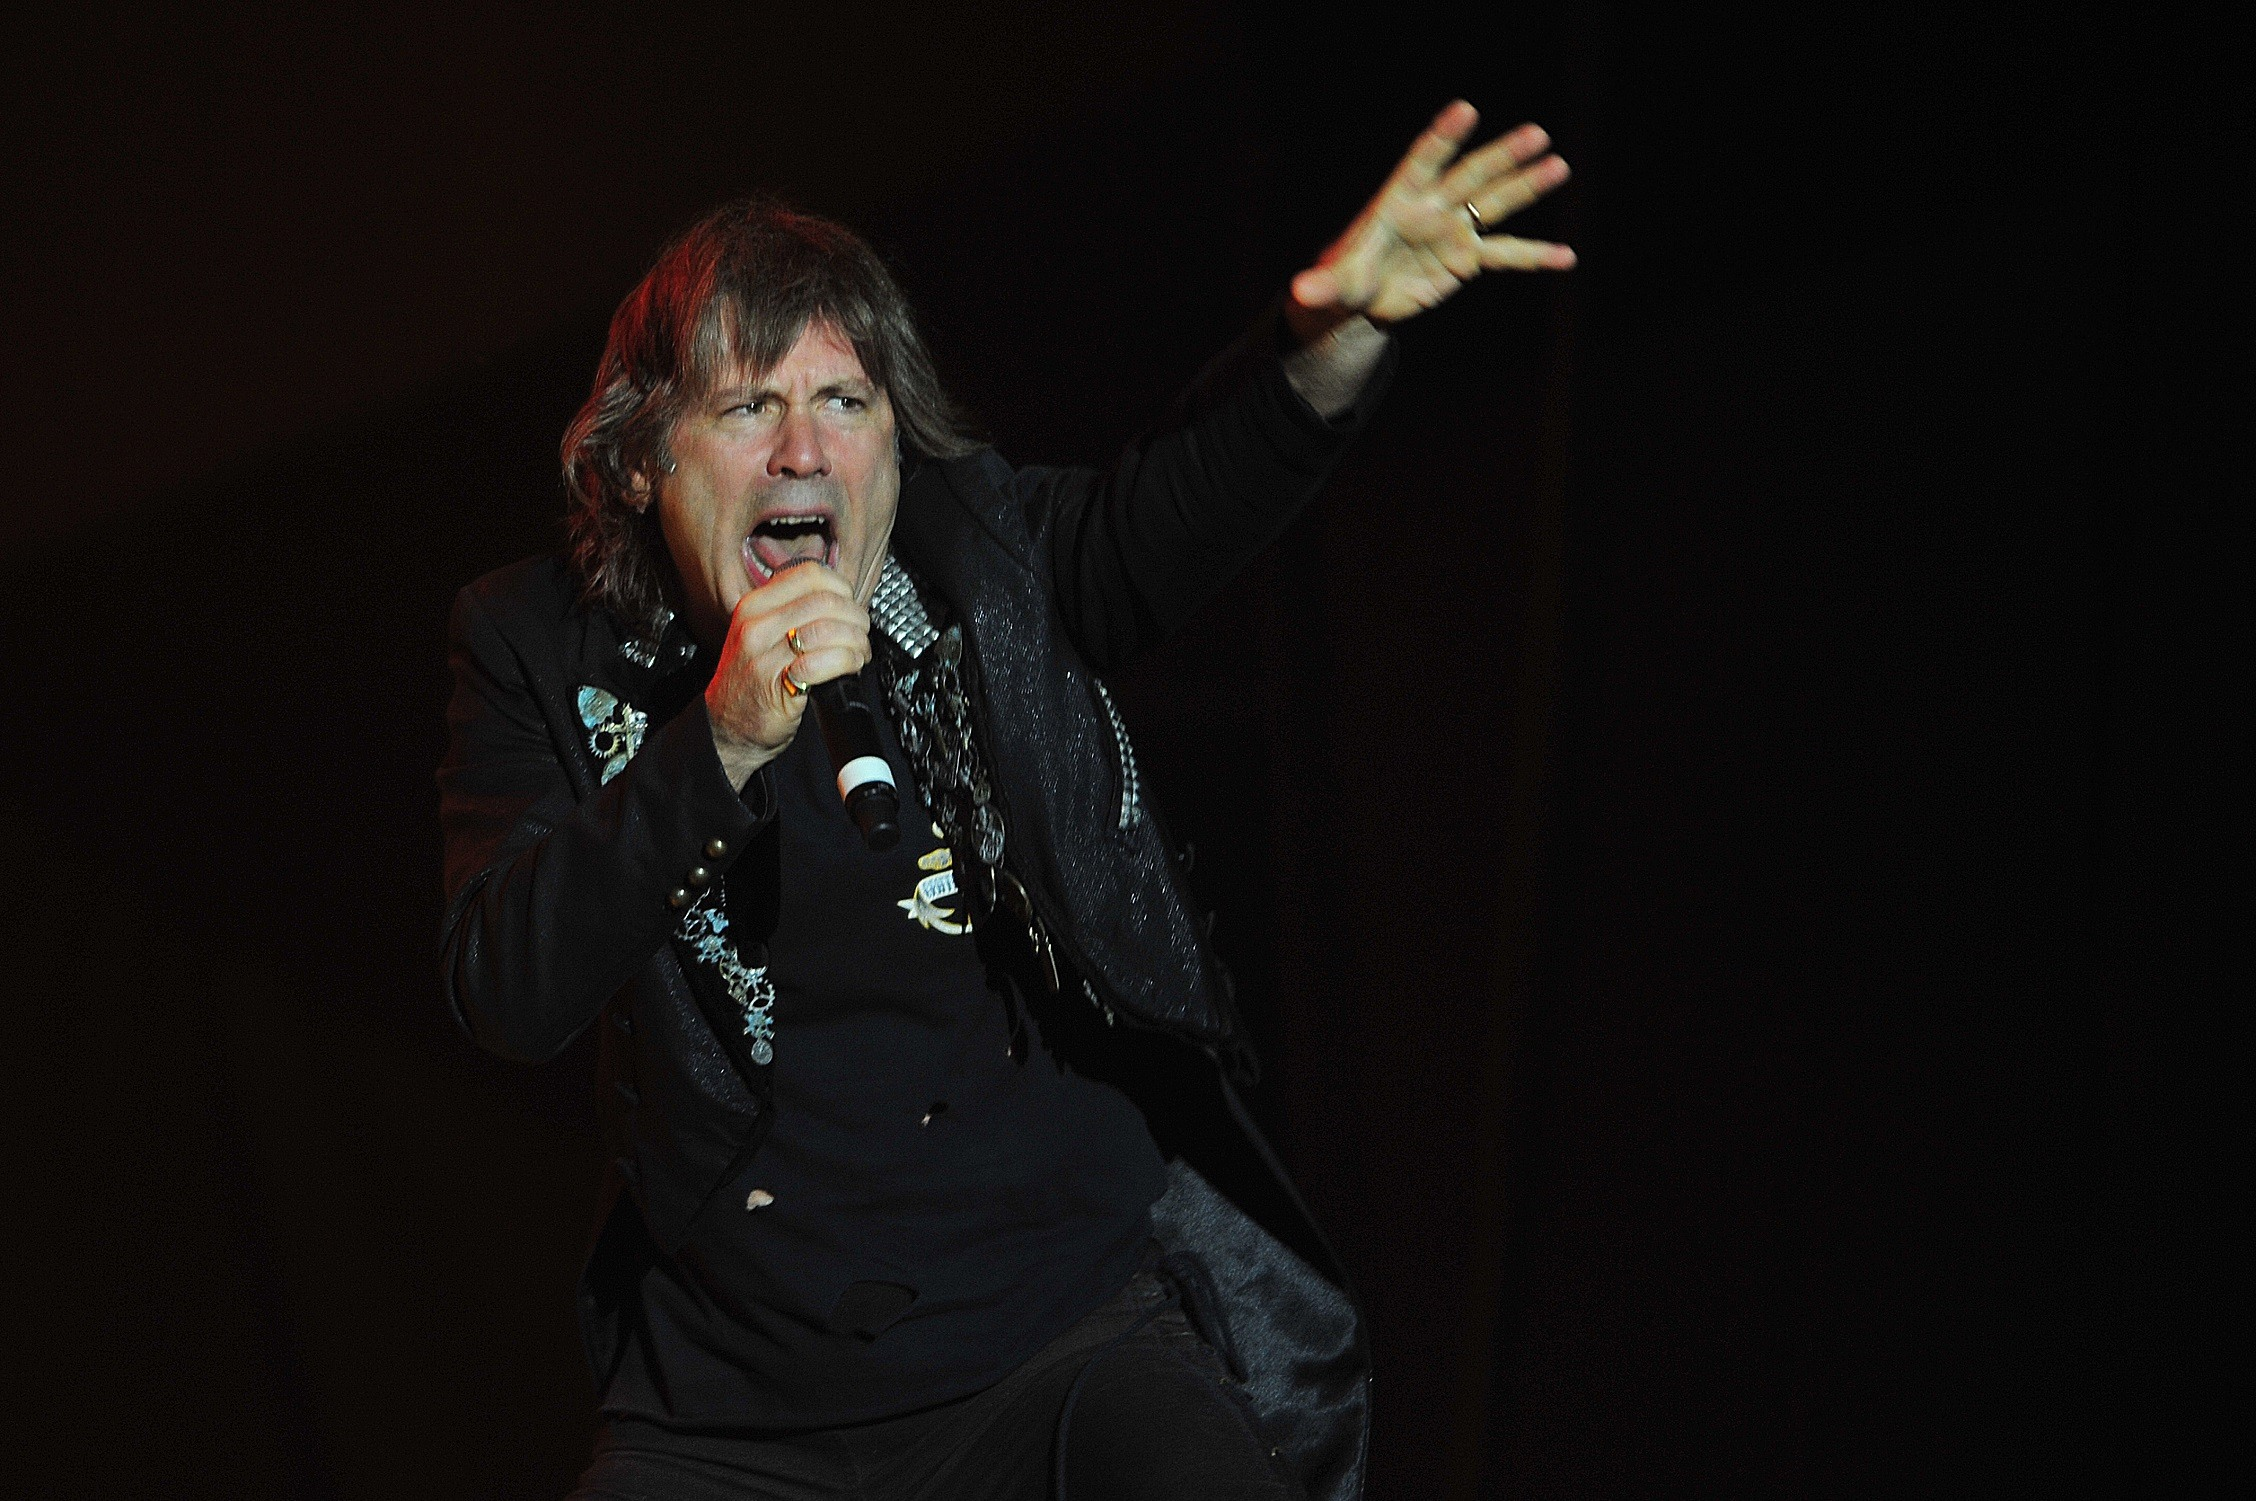 Bruce Dickinson is the richest member of Iron Maiden.